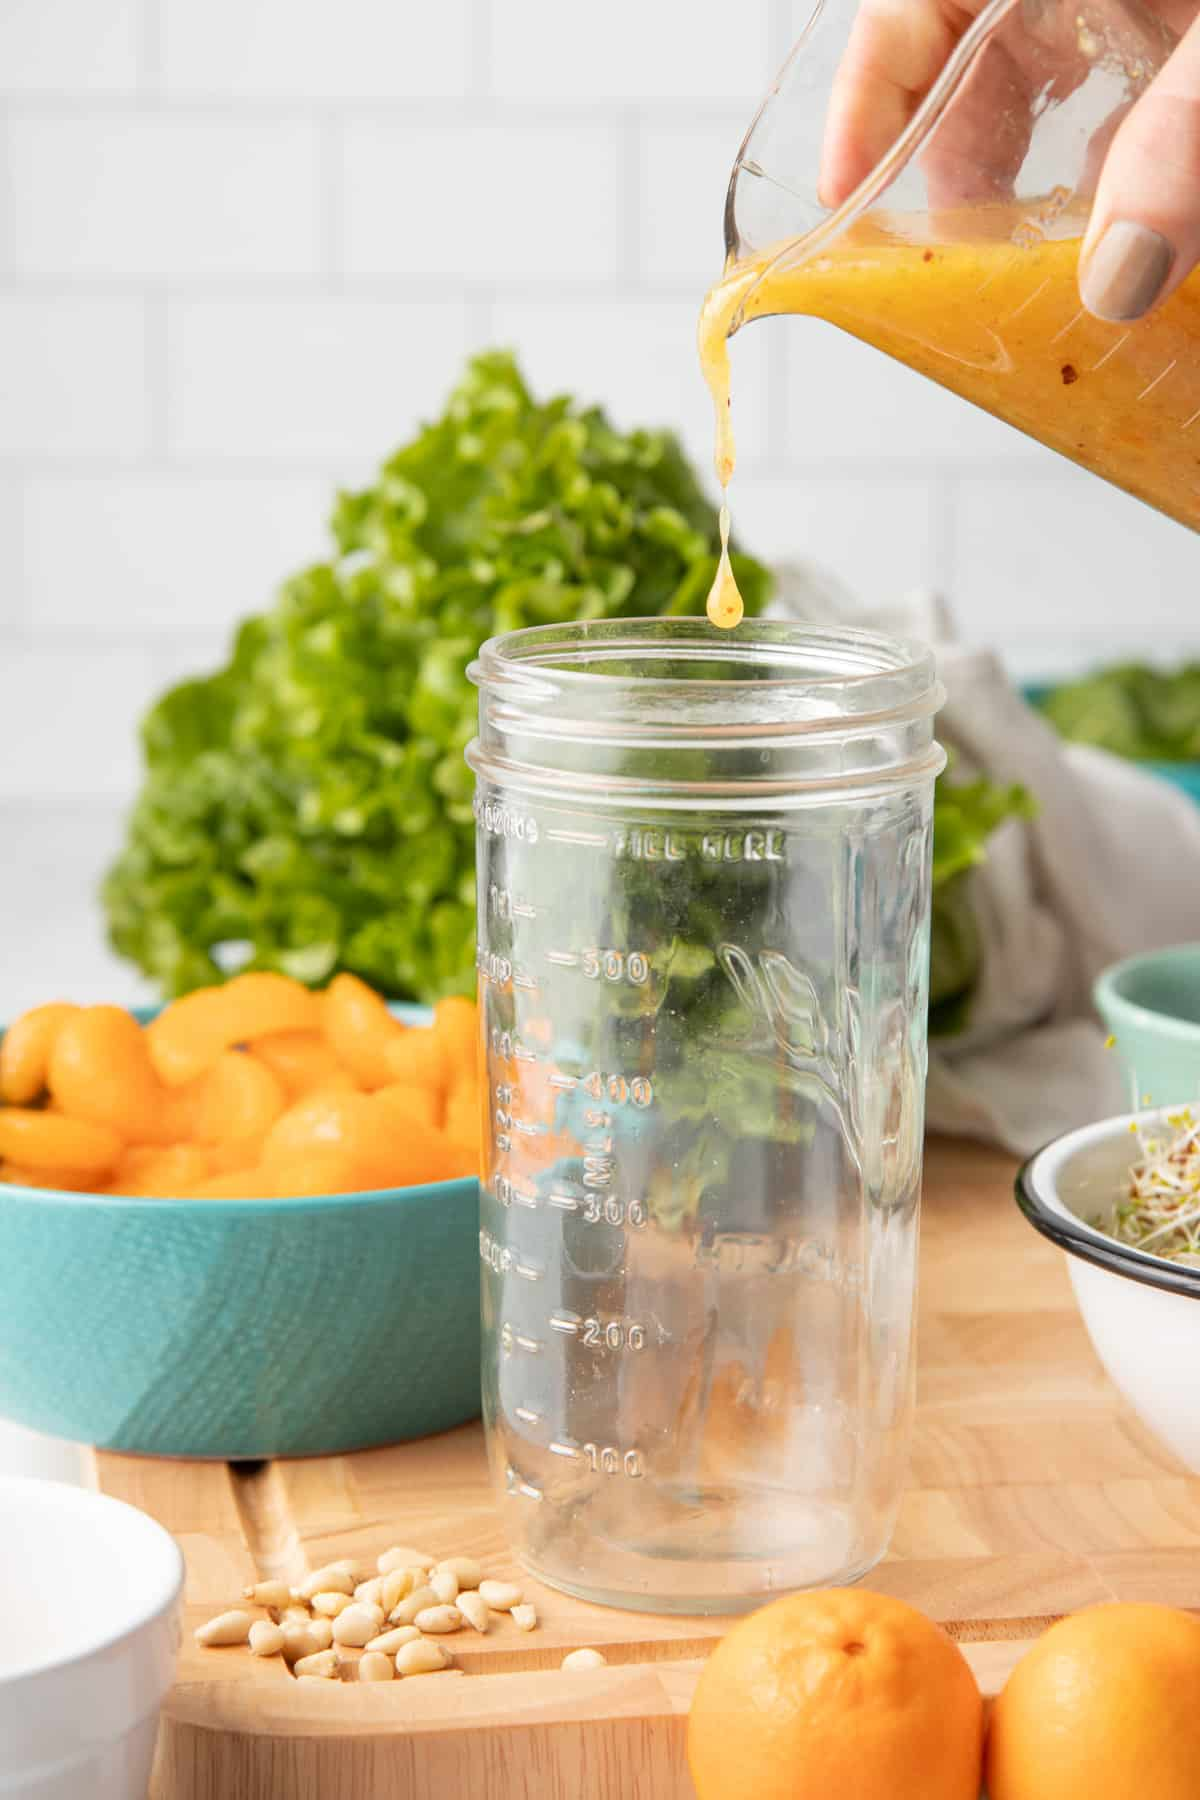 A hand pours orange marmalade vinaigrette from a measuring cup into the bottom of a mason jar.